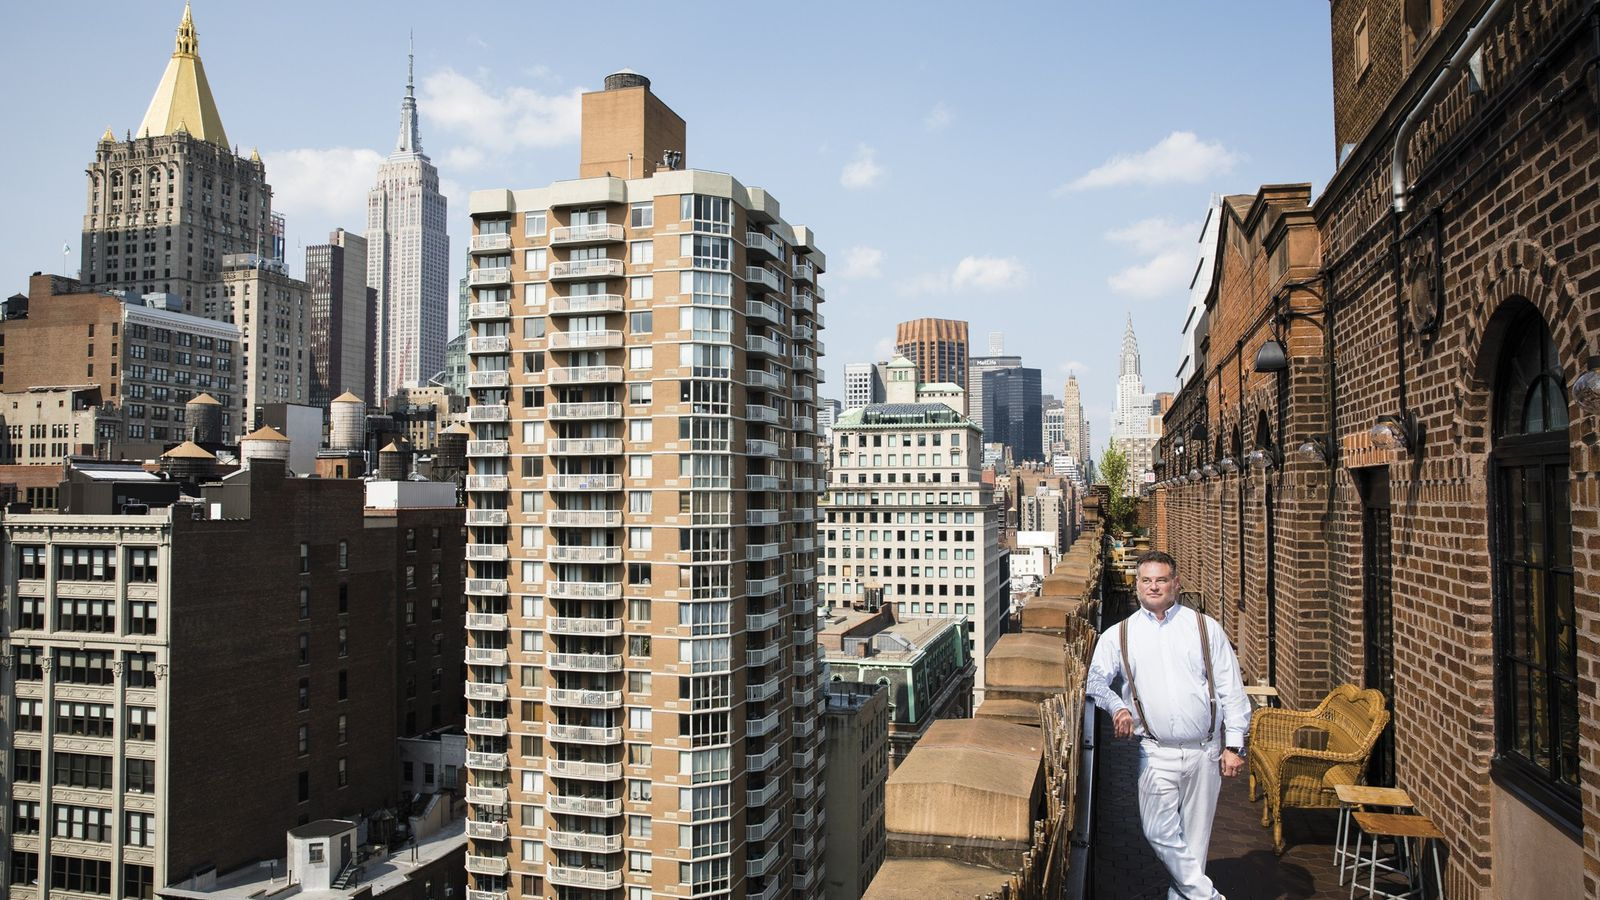 Andrew Zobler looks out on New York City from the roof of his Freehand Hotel, which ...